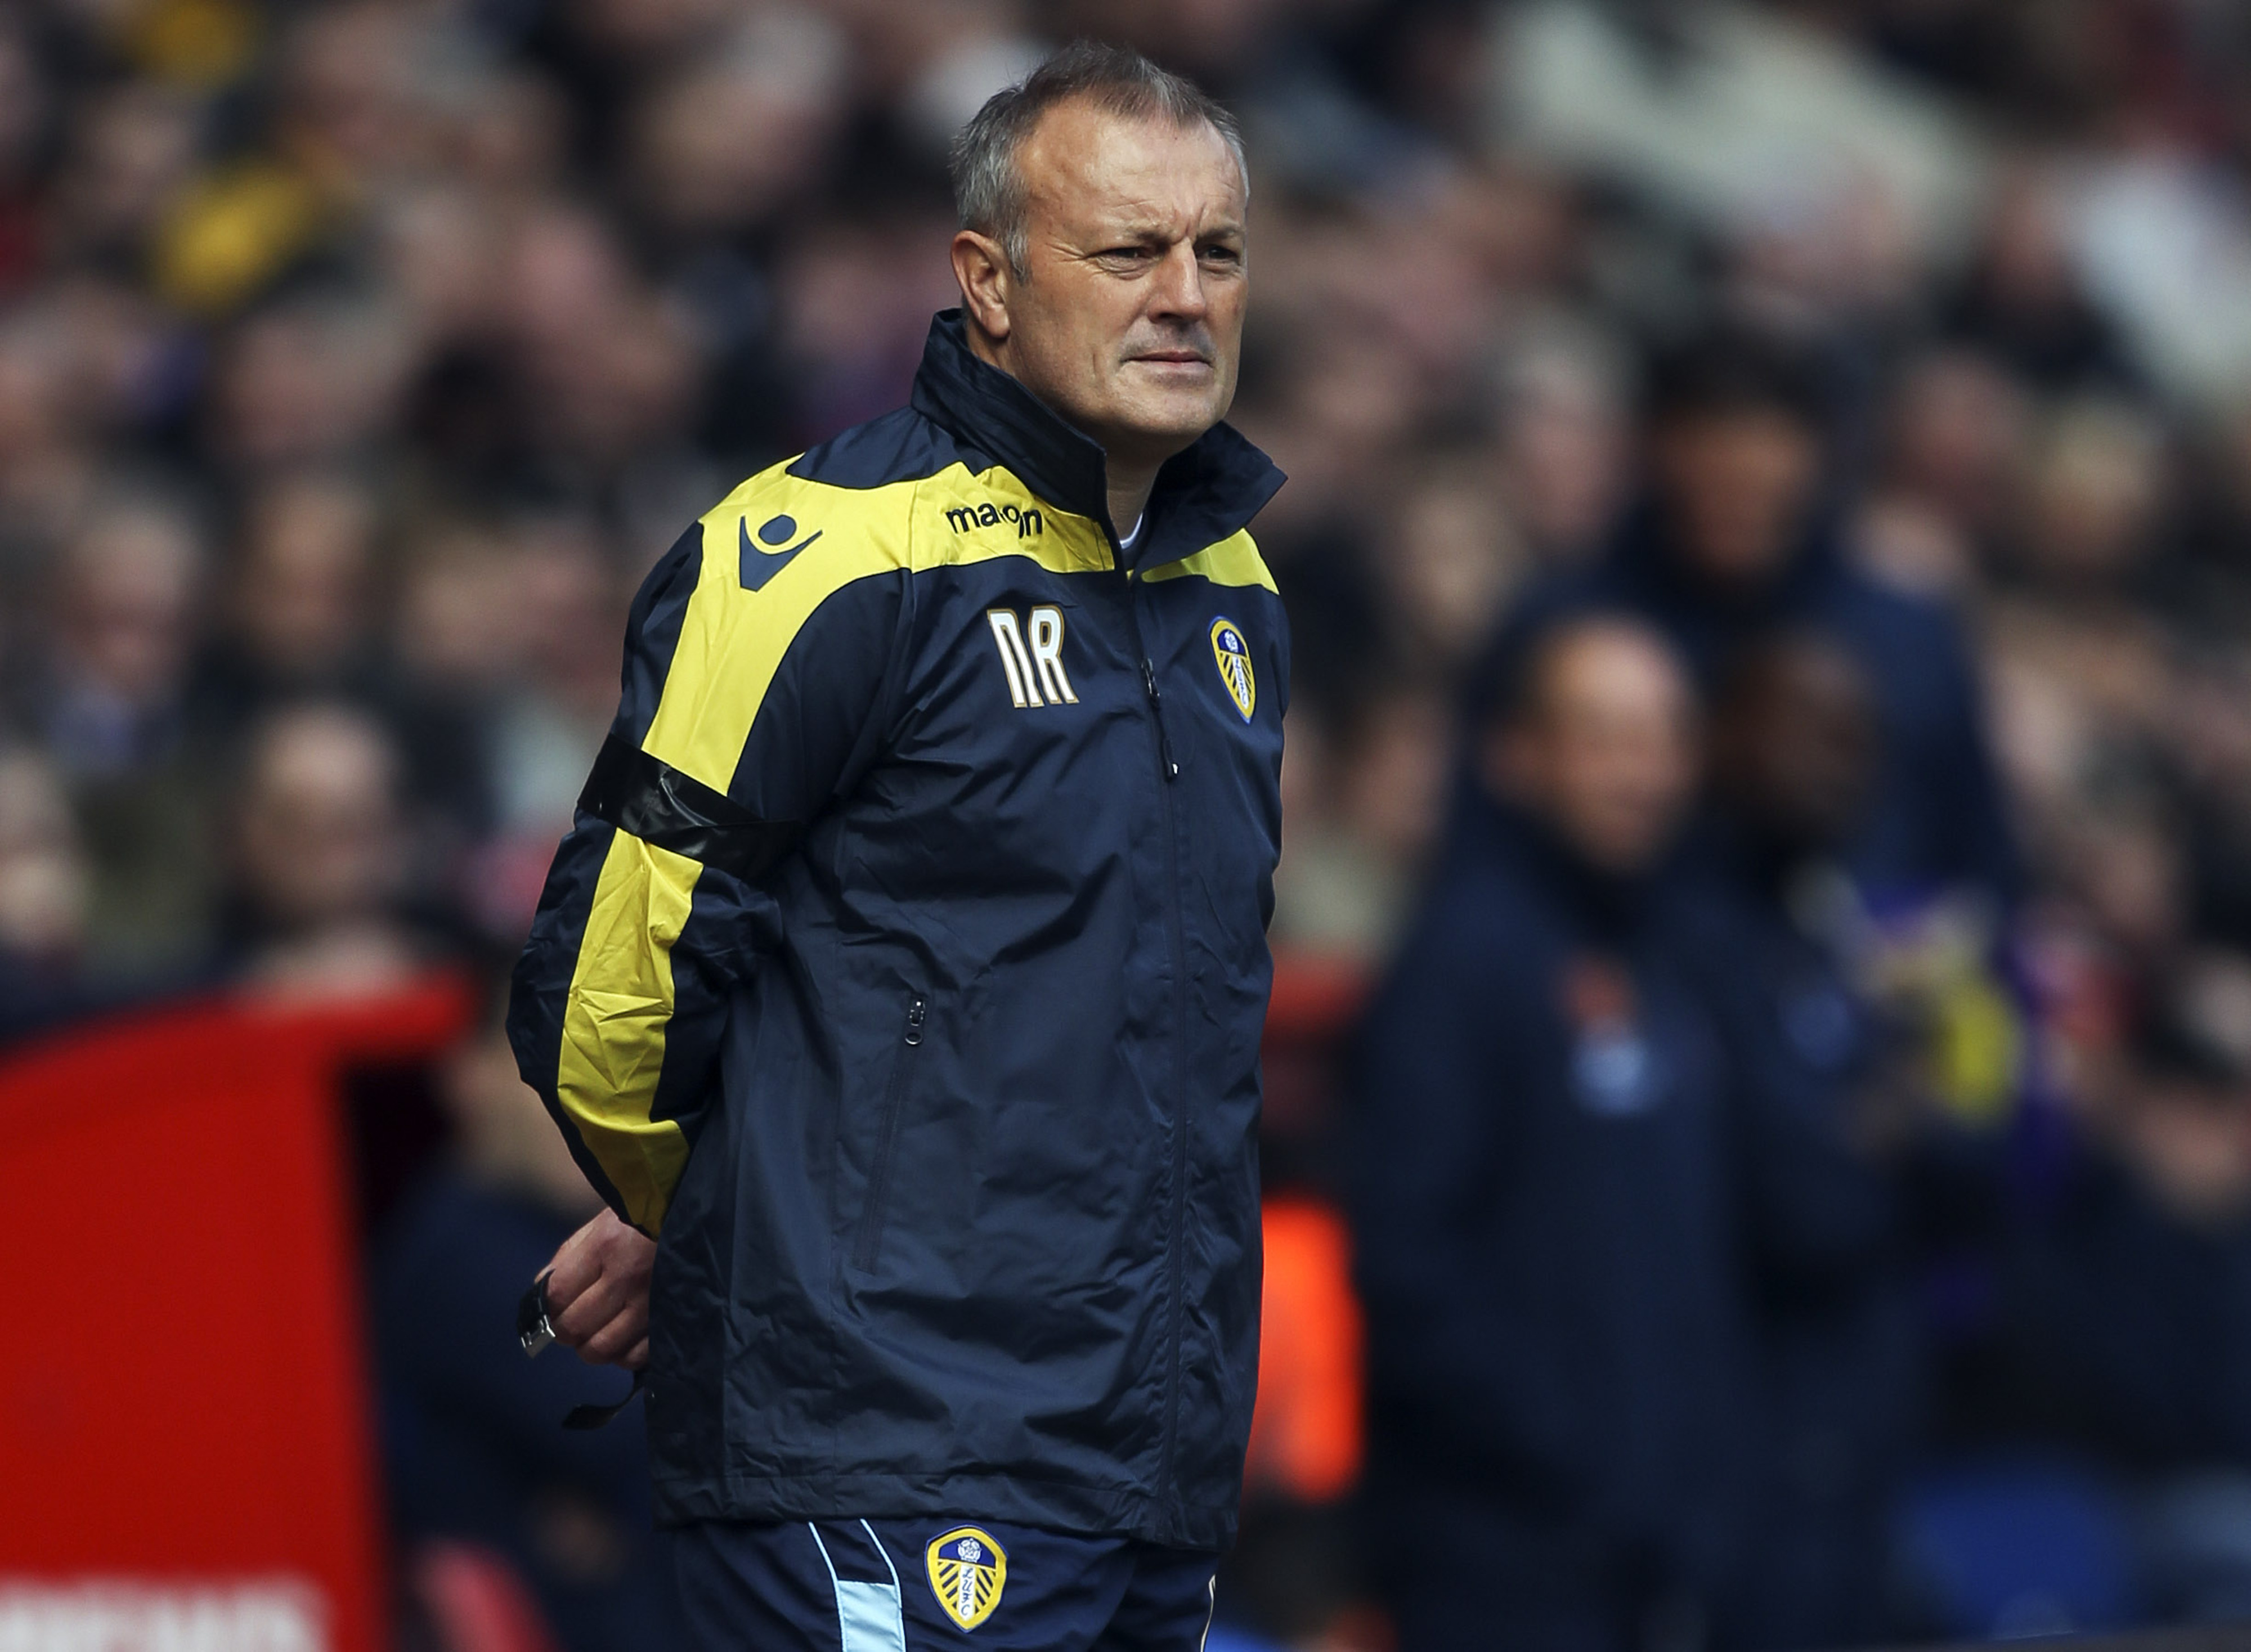 Neil Redfearn has been given the thankless task of keeping United up.